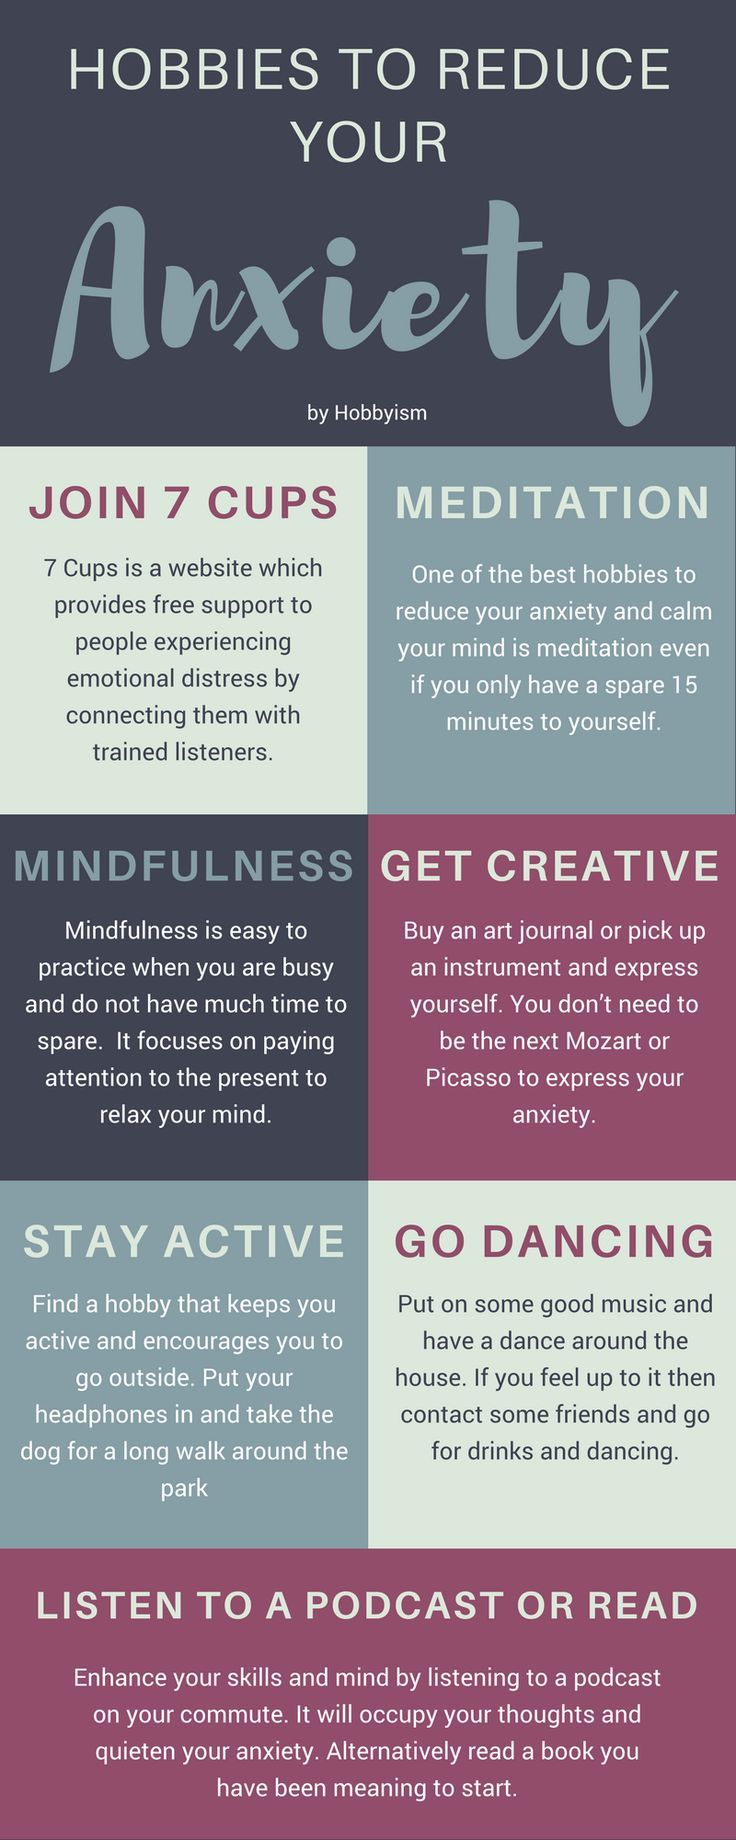 Psychology-Infographic-Hobbies-that-will-help-to-reduce-and-silence-your-anxiety-by-Hobbyism Psychology Infographic : Hobbies that will help to reduce and silence your anxiety by Hobbyism.